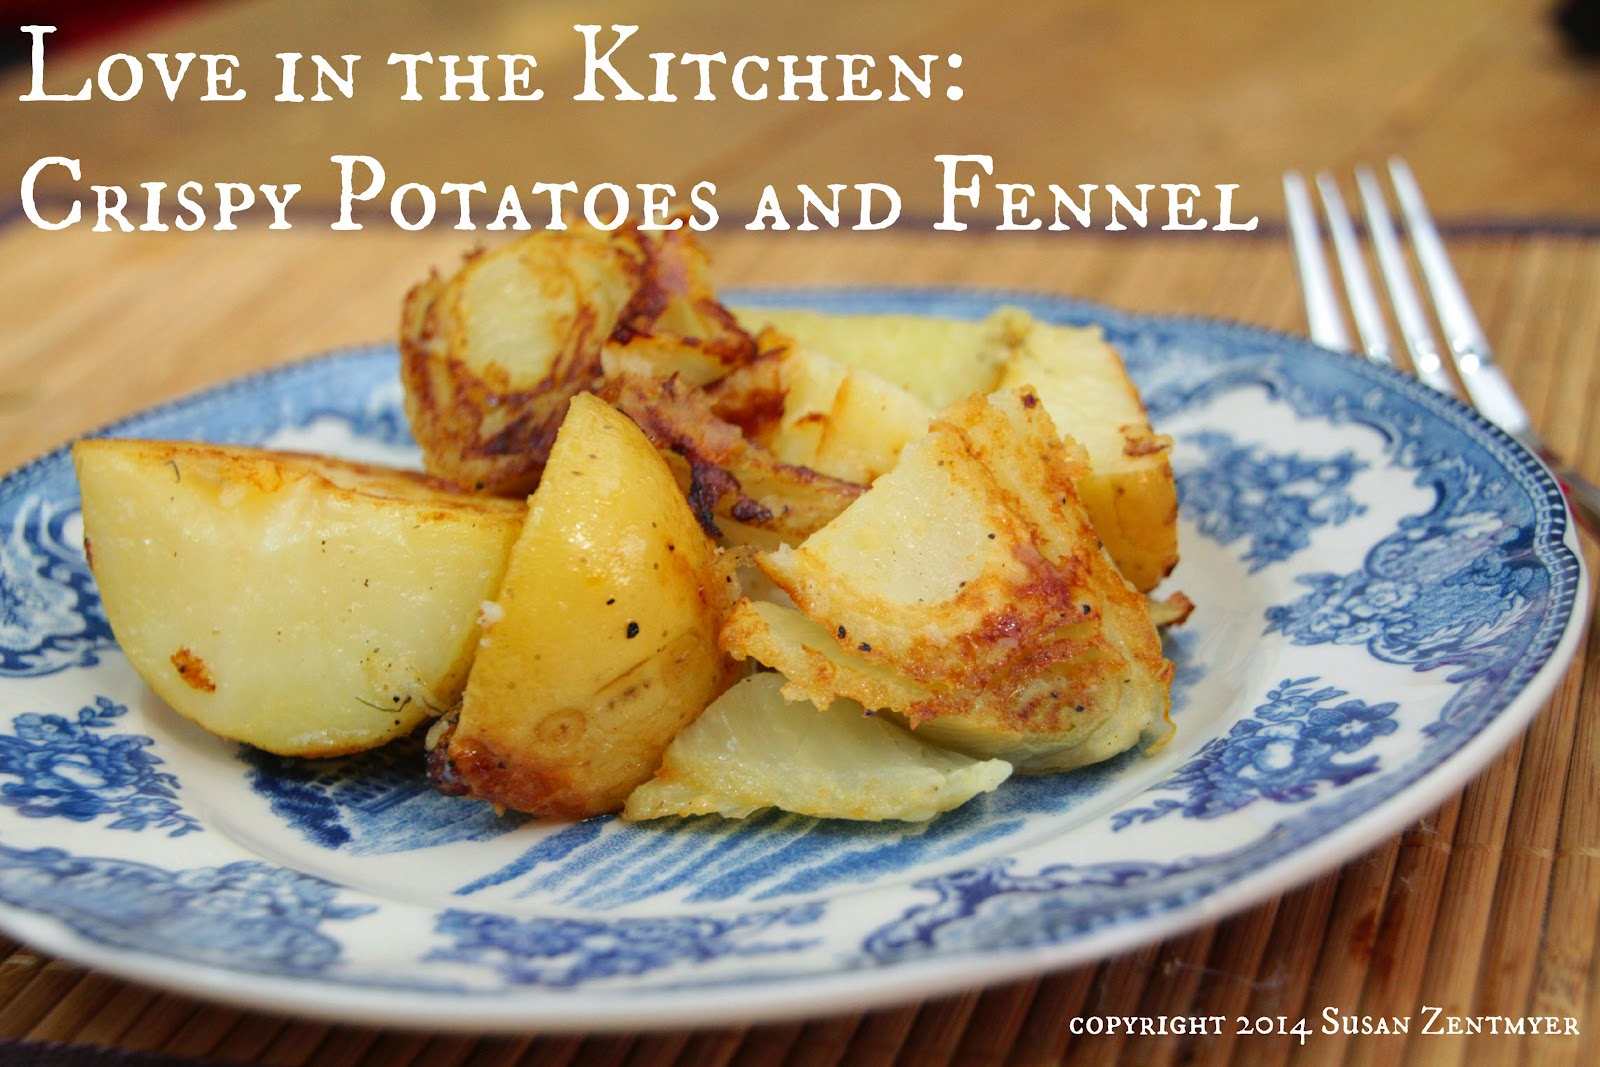 Roasted fennel and potatoes - Cook and Post